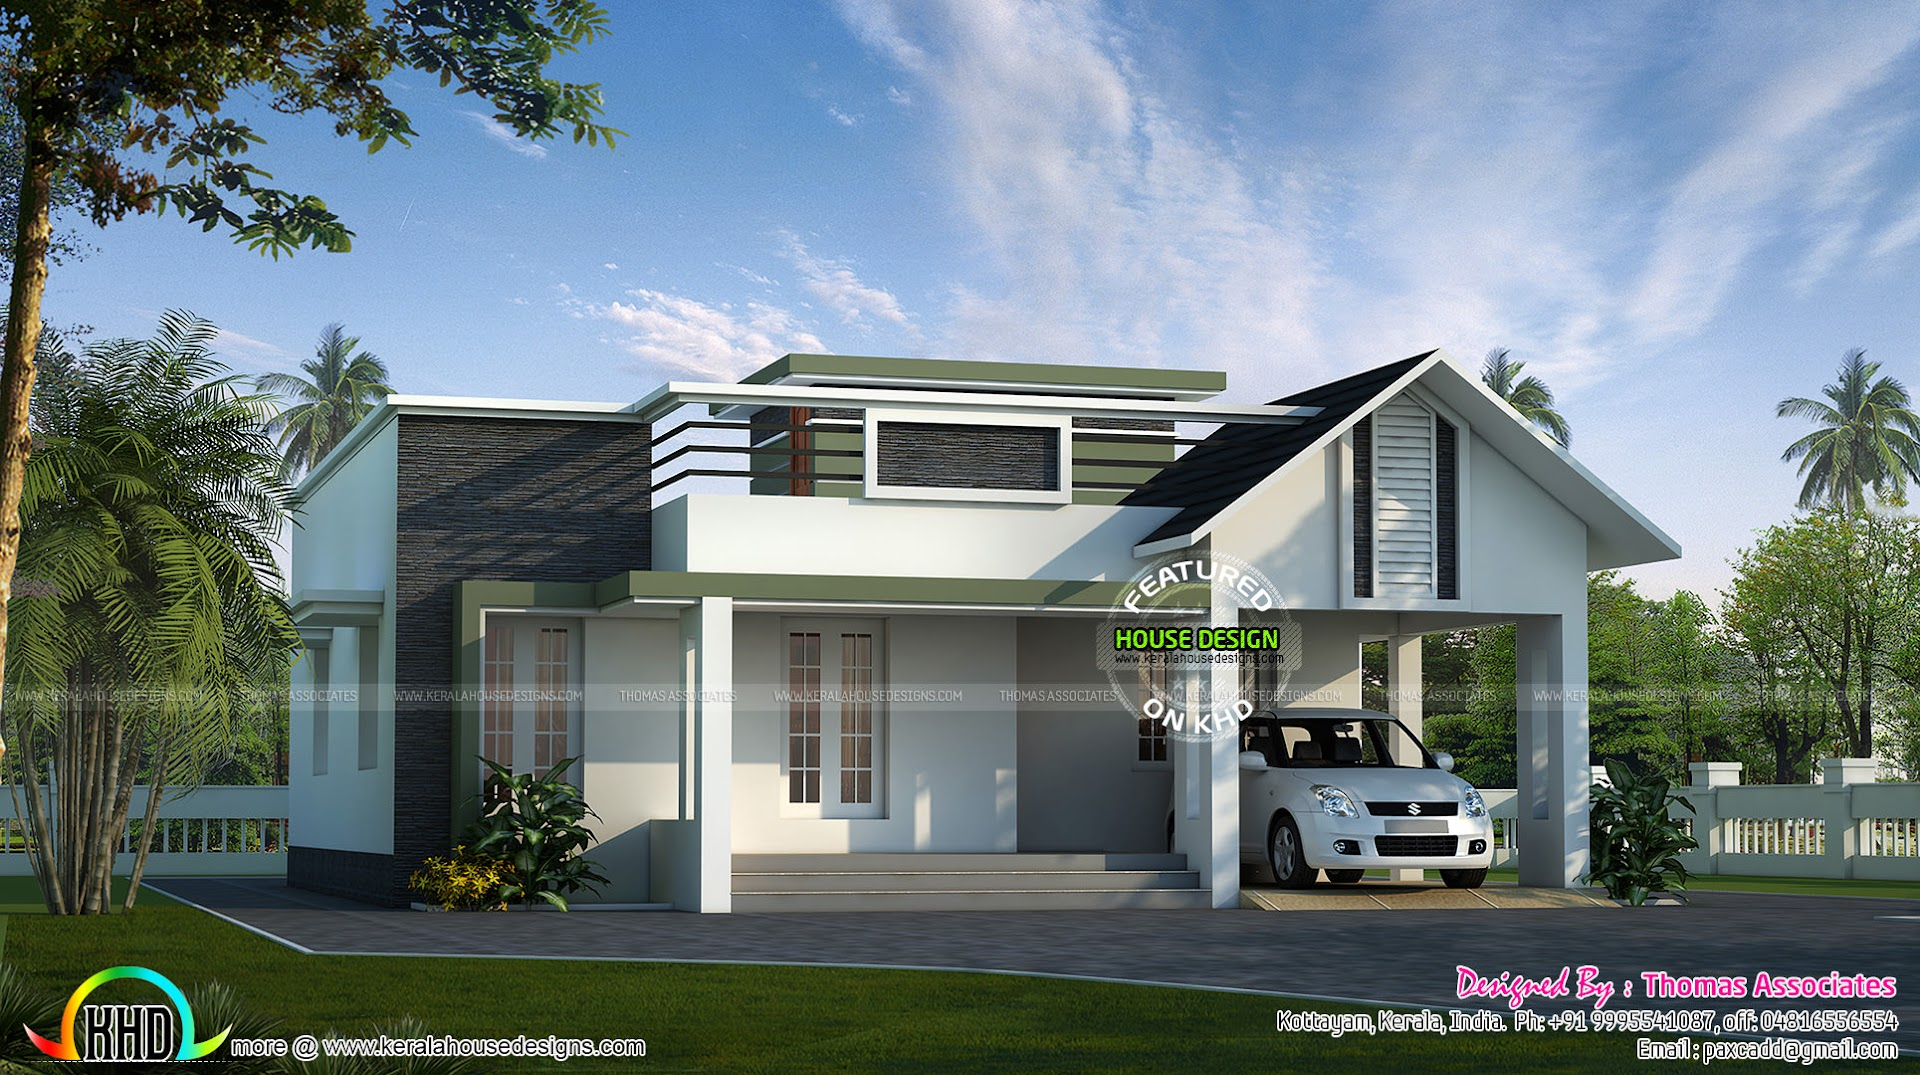 Small simple 1200 sq ft house kerala home design and for Simple kerala home designs